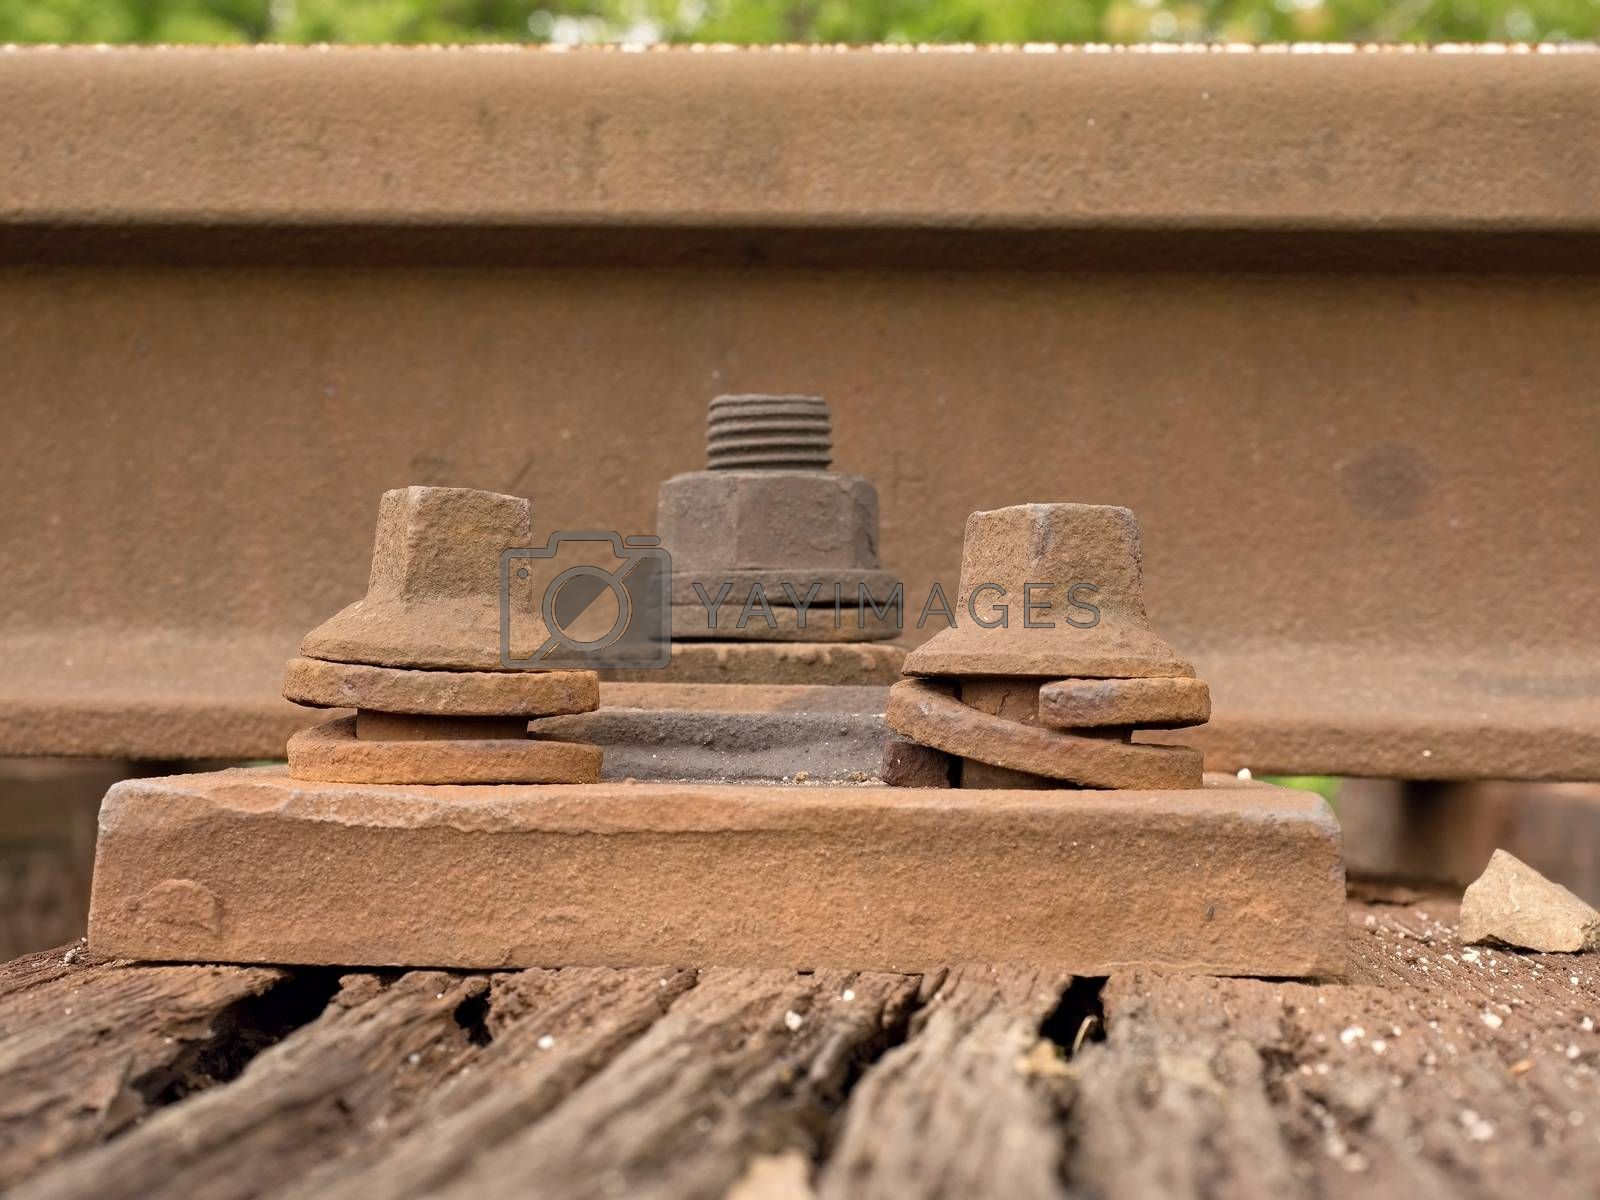 Detail of rusty screws and nut on old railroad track. Rotten wooden tie with rusty nuts and bolts. Damaged wooden railway sleeper. No train passed this railroad for a long time.